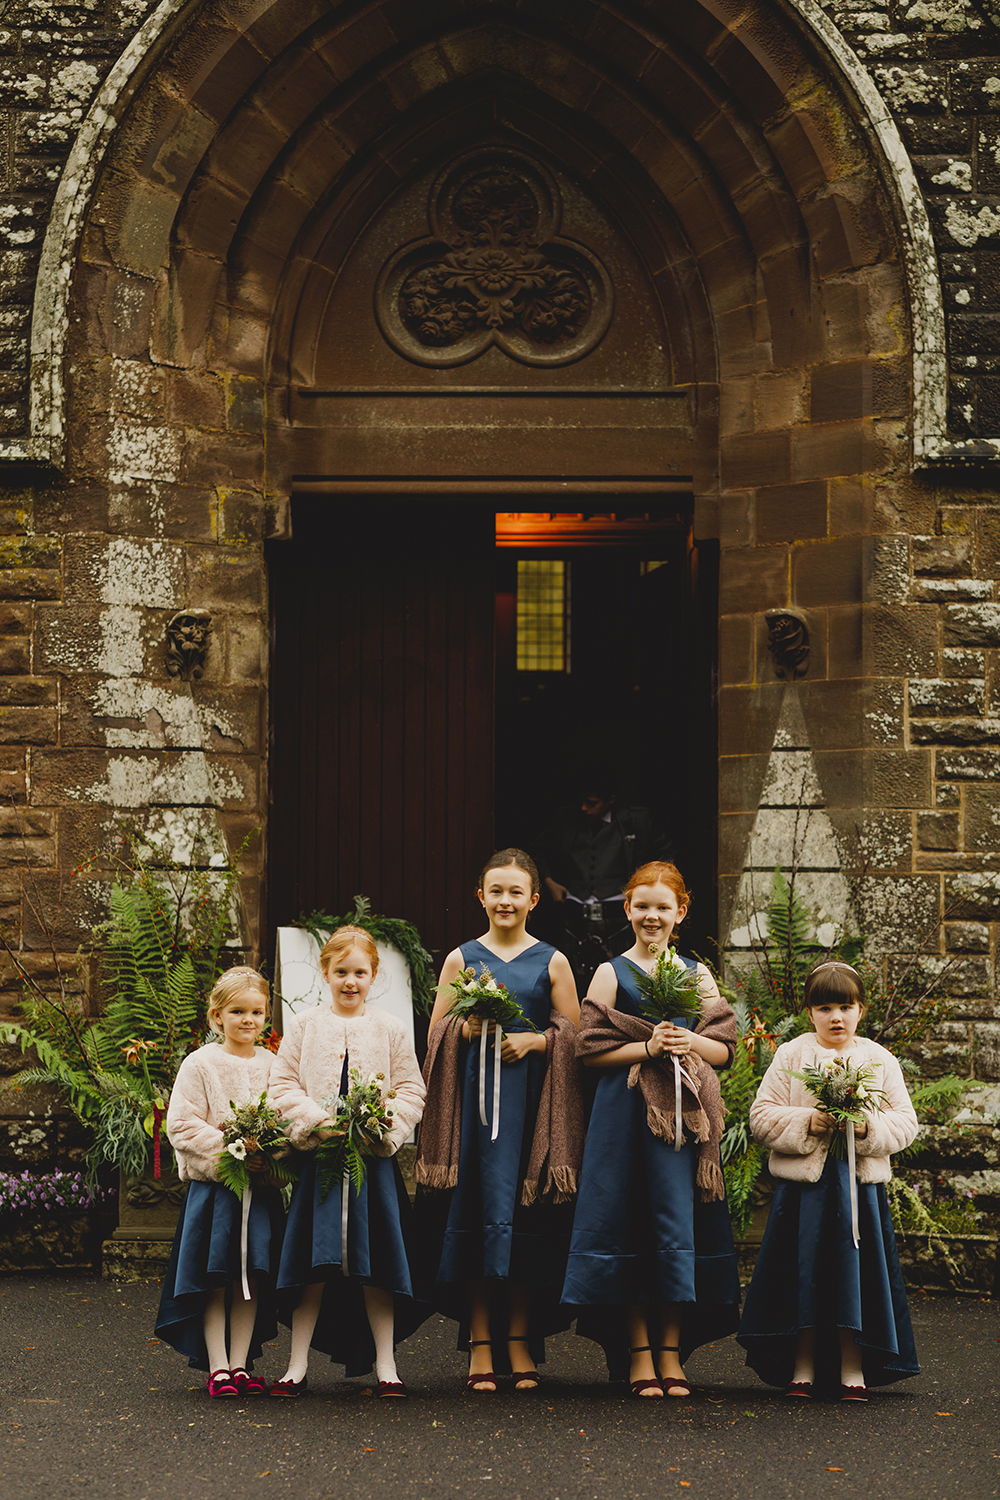 getting ready - Drumtochty Castle autumnal wedding by Duke Wedding Photography